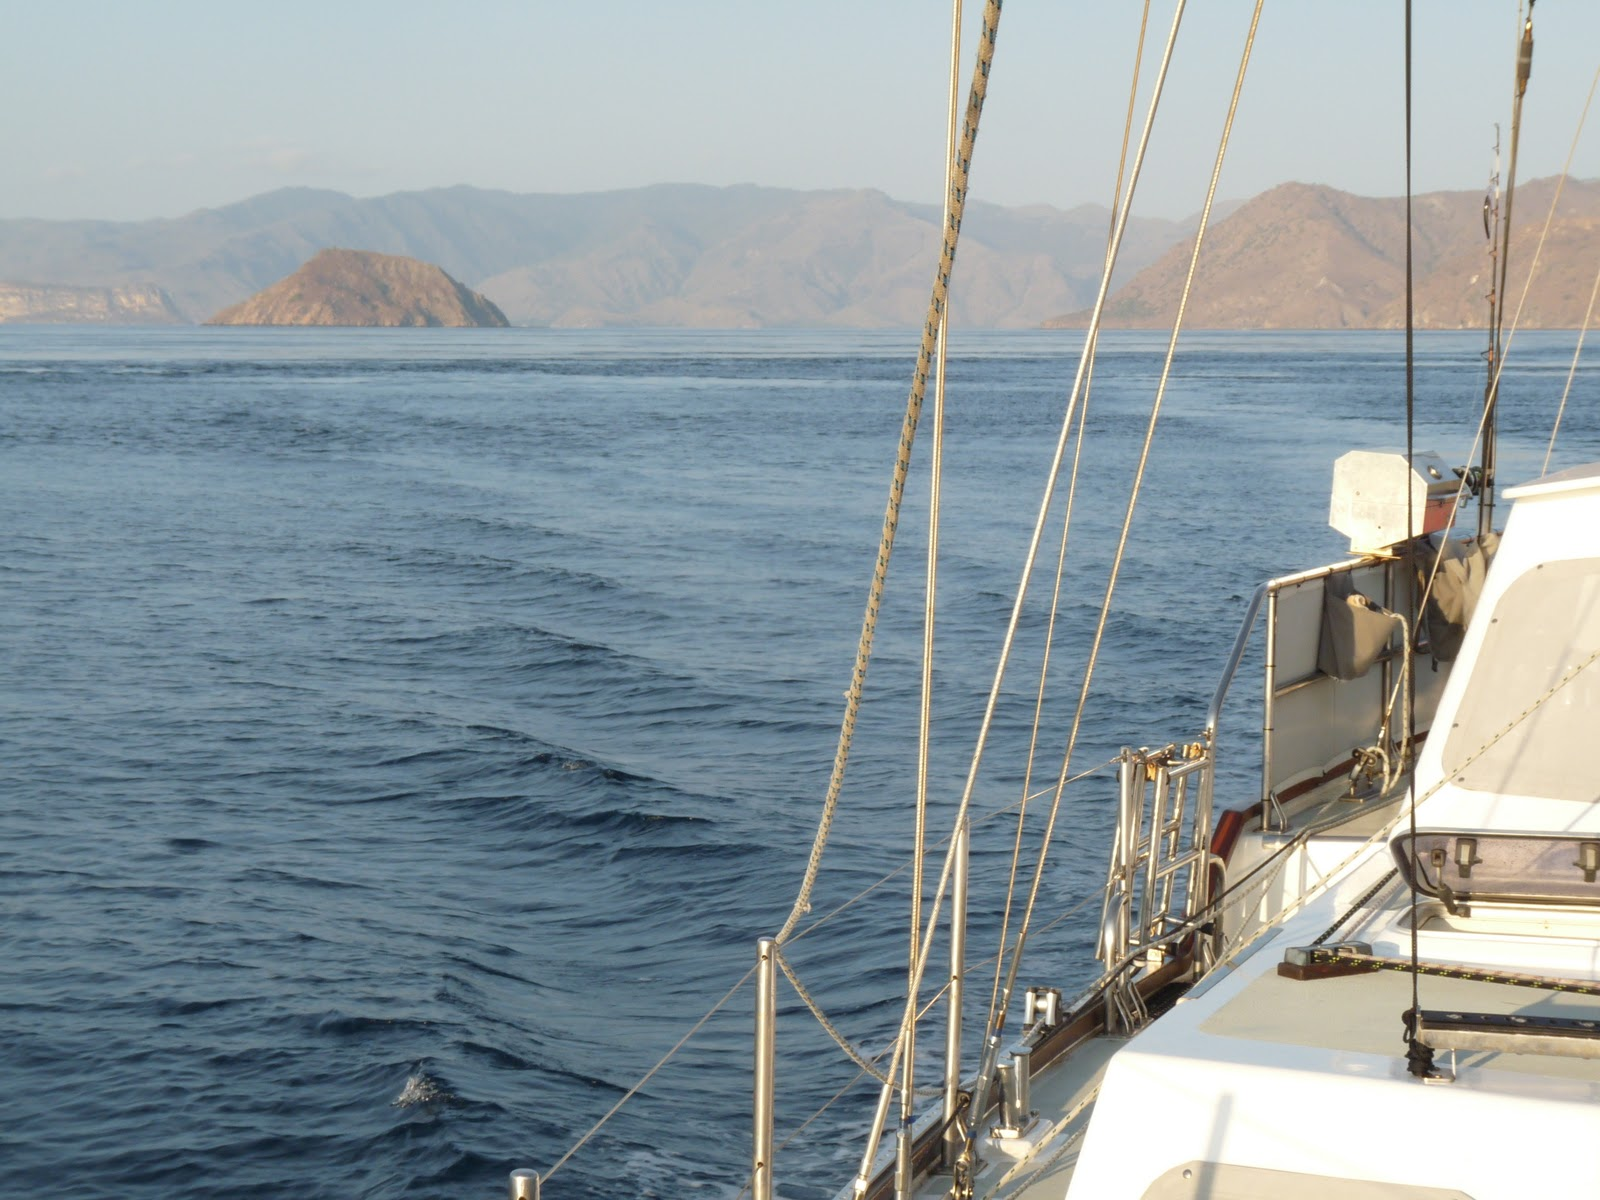 Cognac Sailing Komodo Island And The Dragons Delayed Approaching Absolutely Stunning Some Of 162 Islands